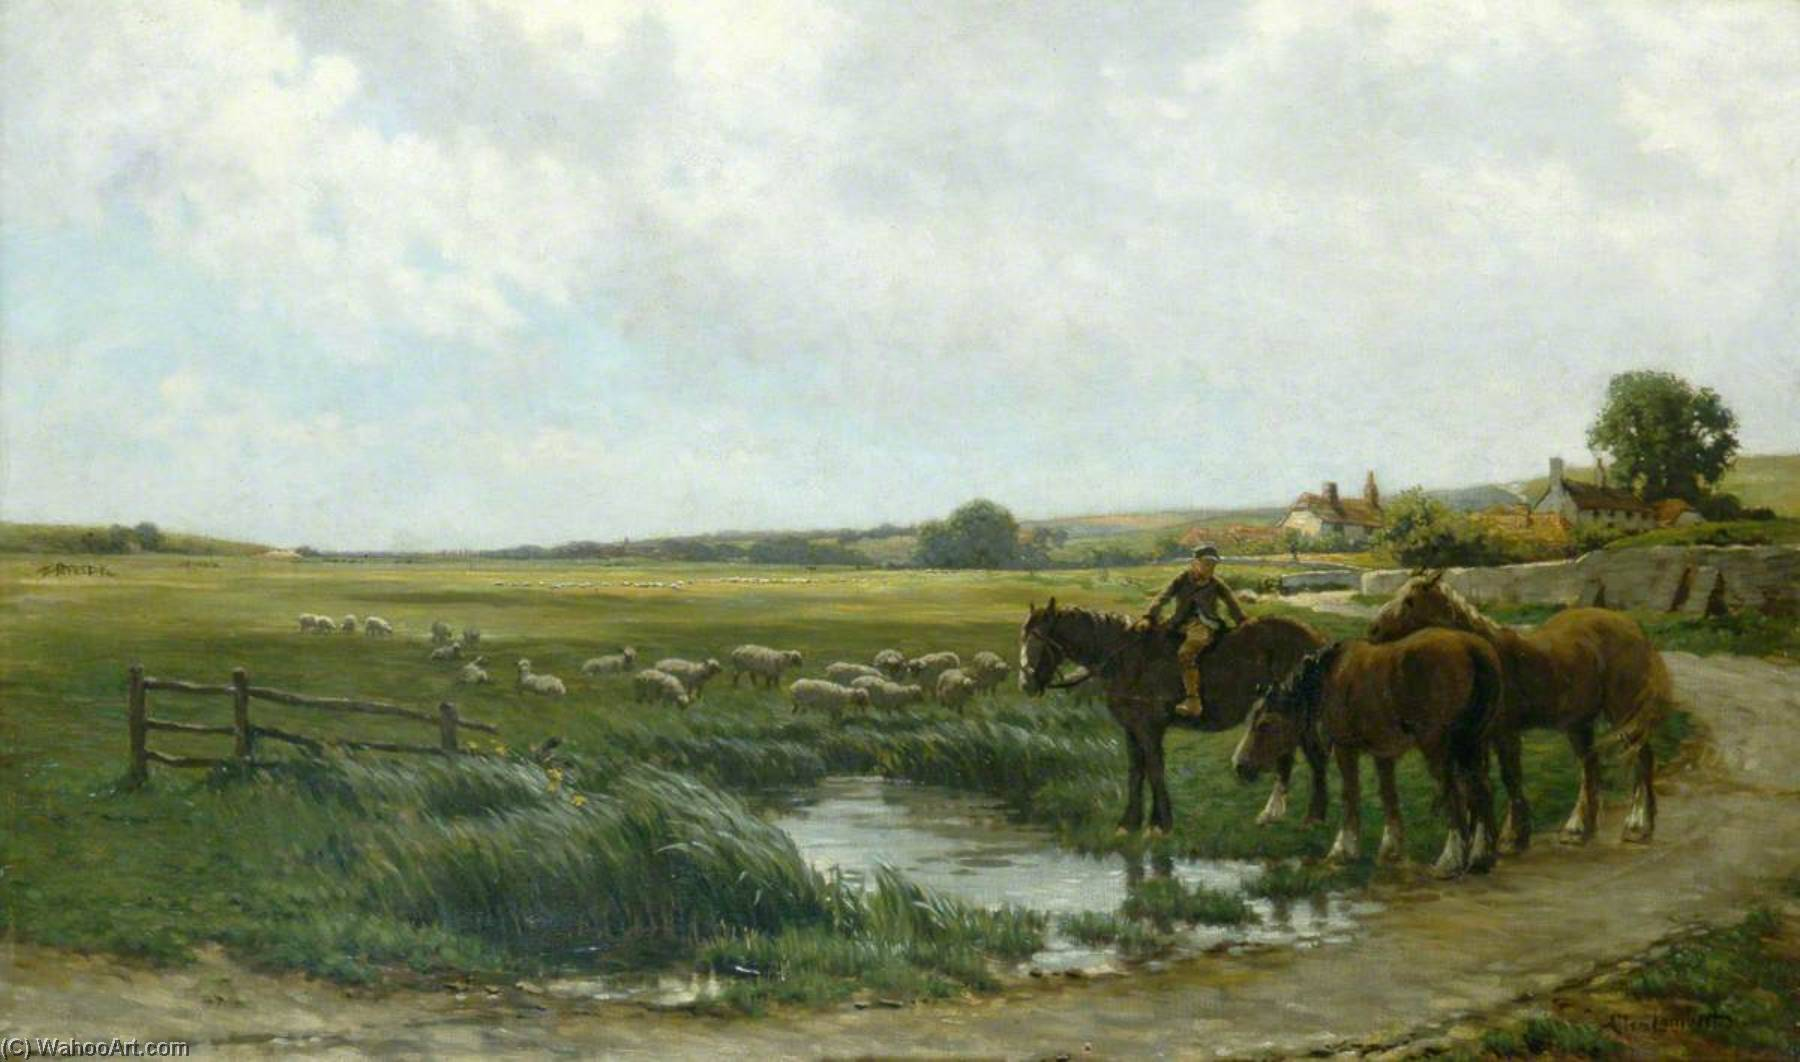 Landscape with Horses and Sheep, 1900 by Clement Lambert | WahooArt.com